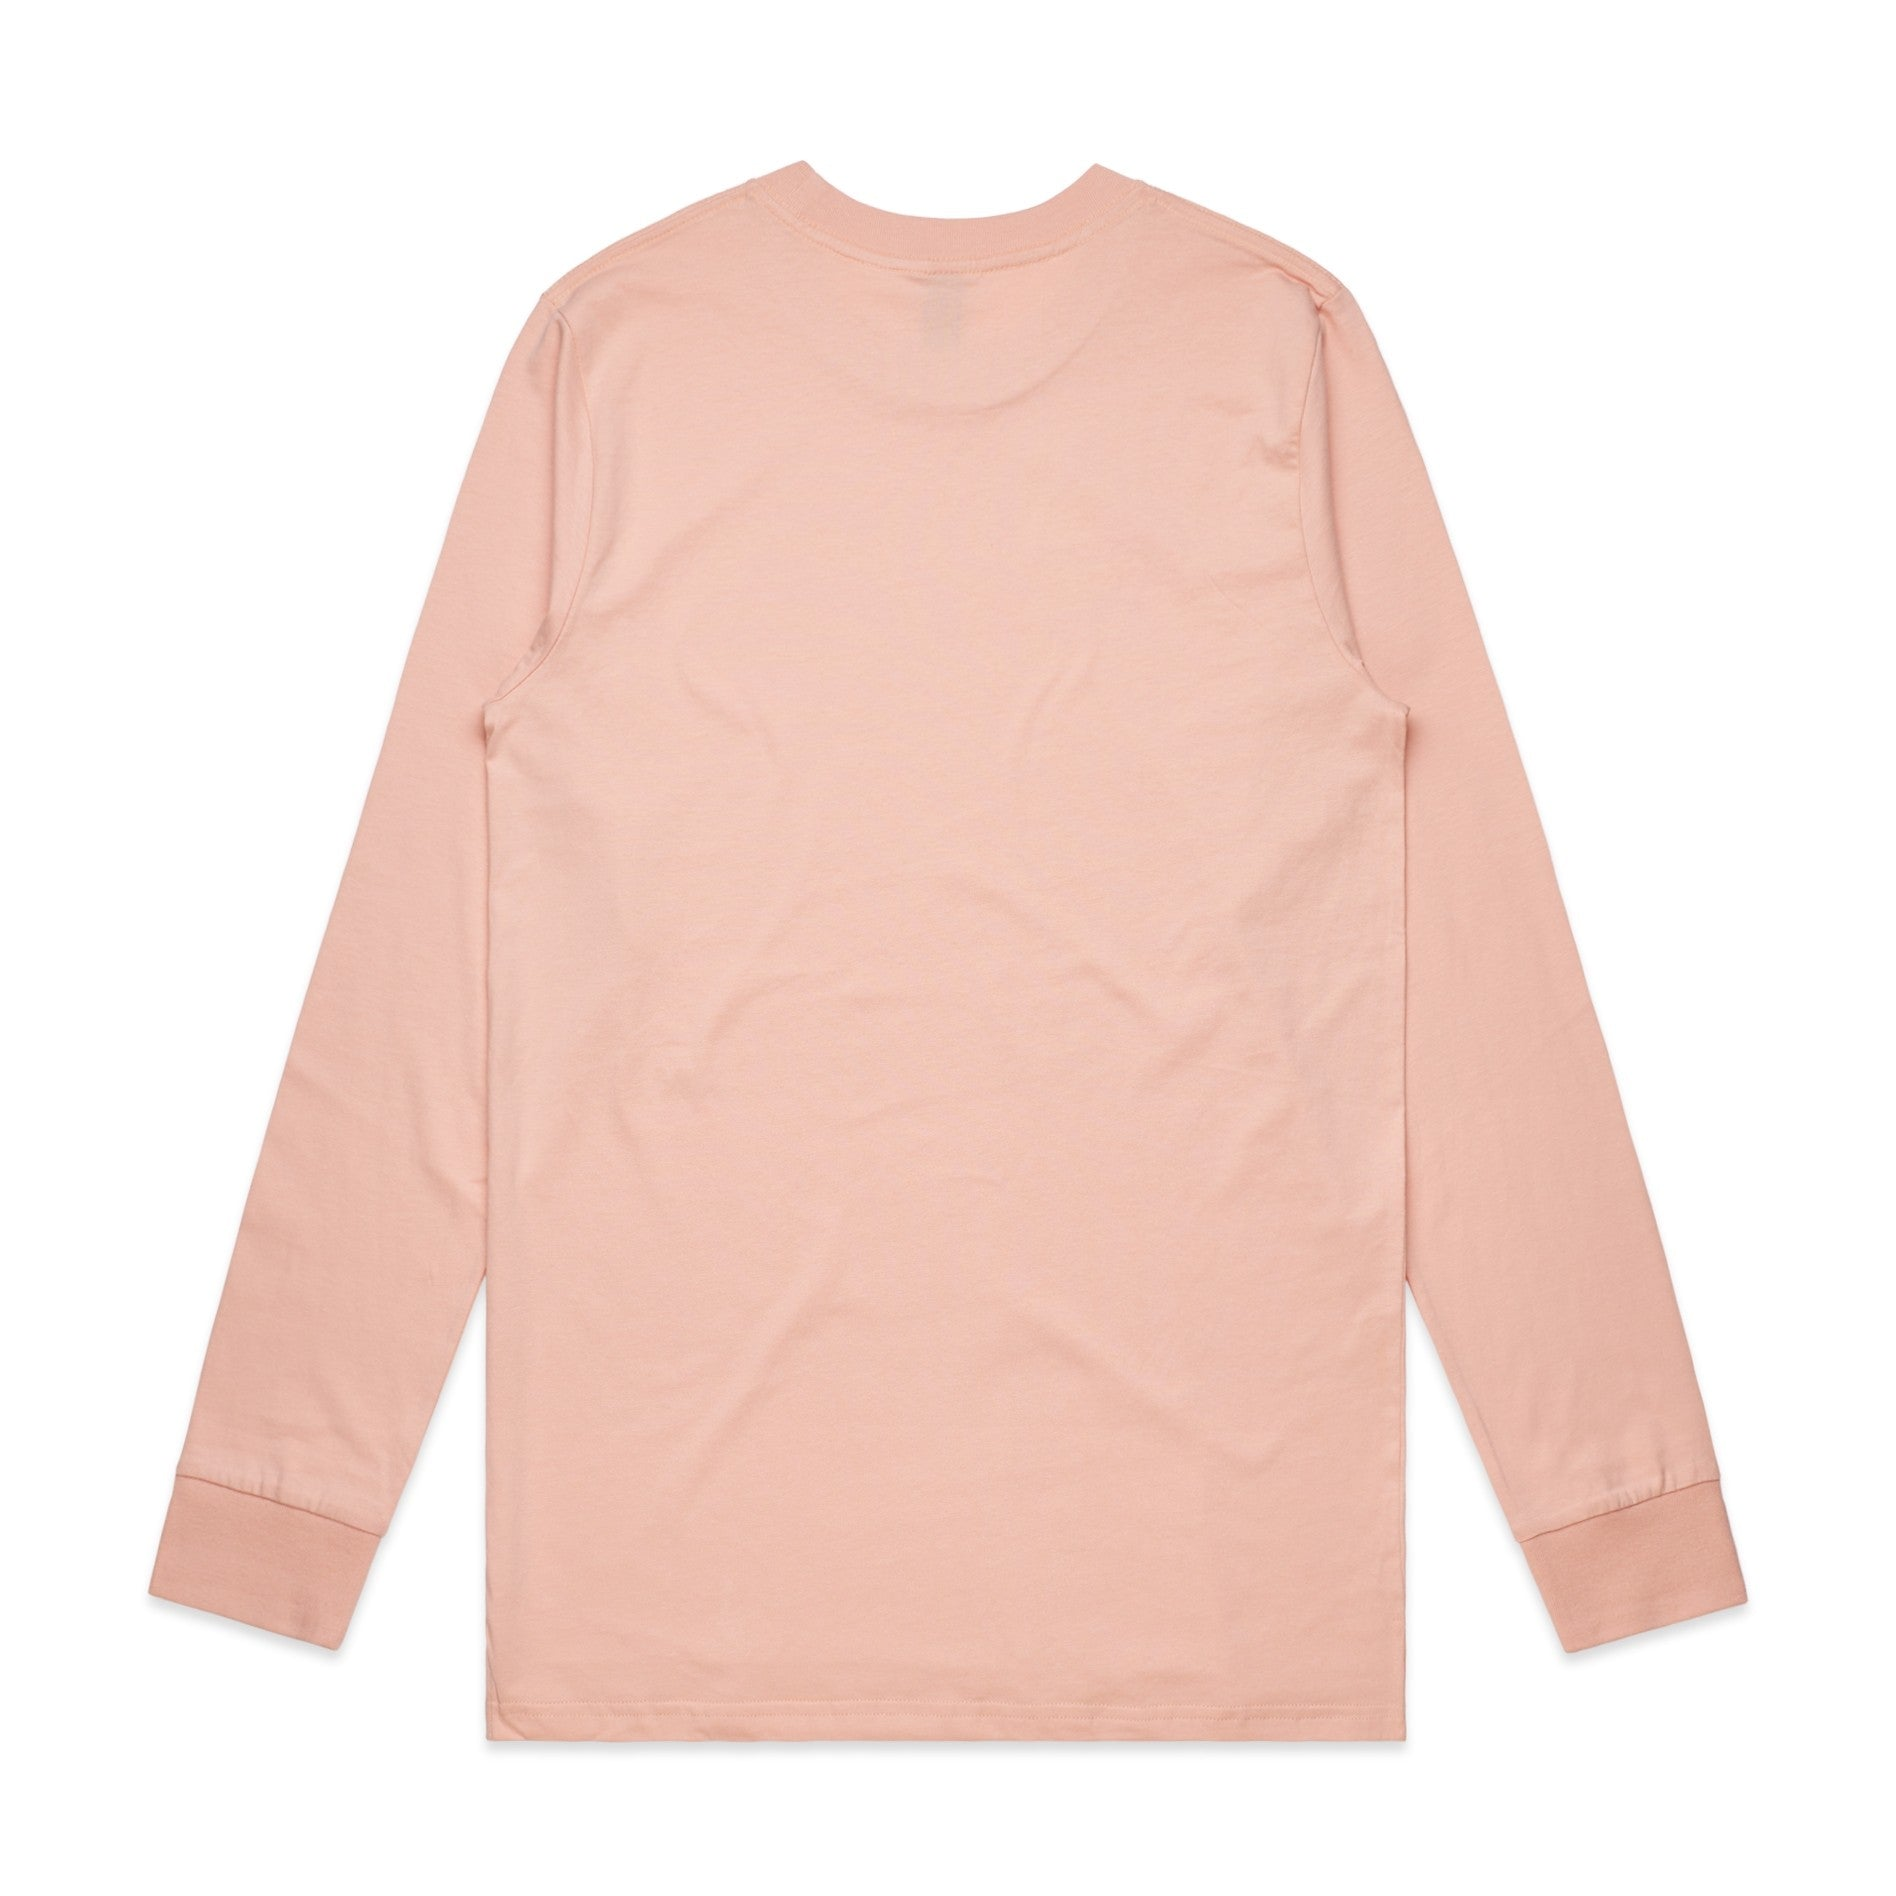 FUNDAMENTAL BADGE LONG SLEEVE - PALE PINK